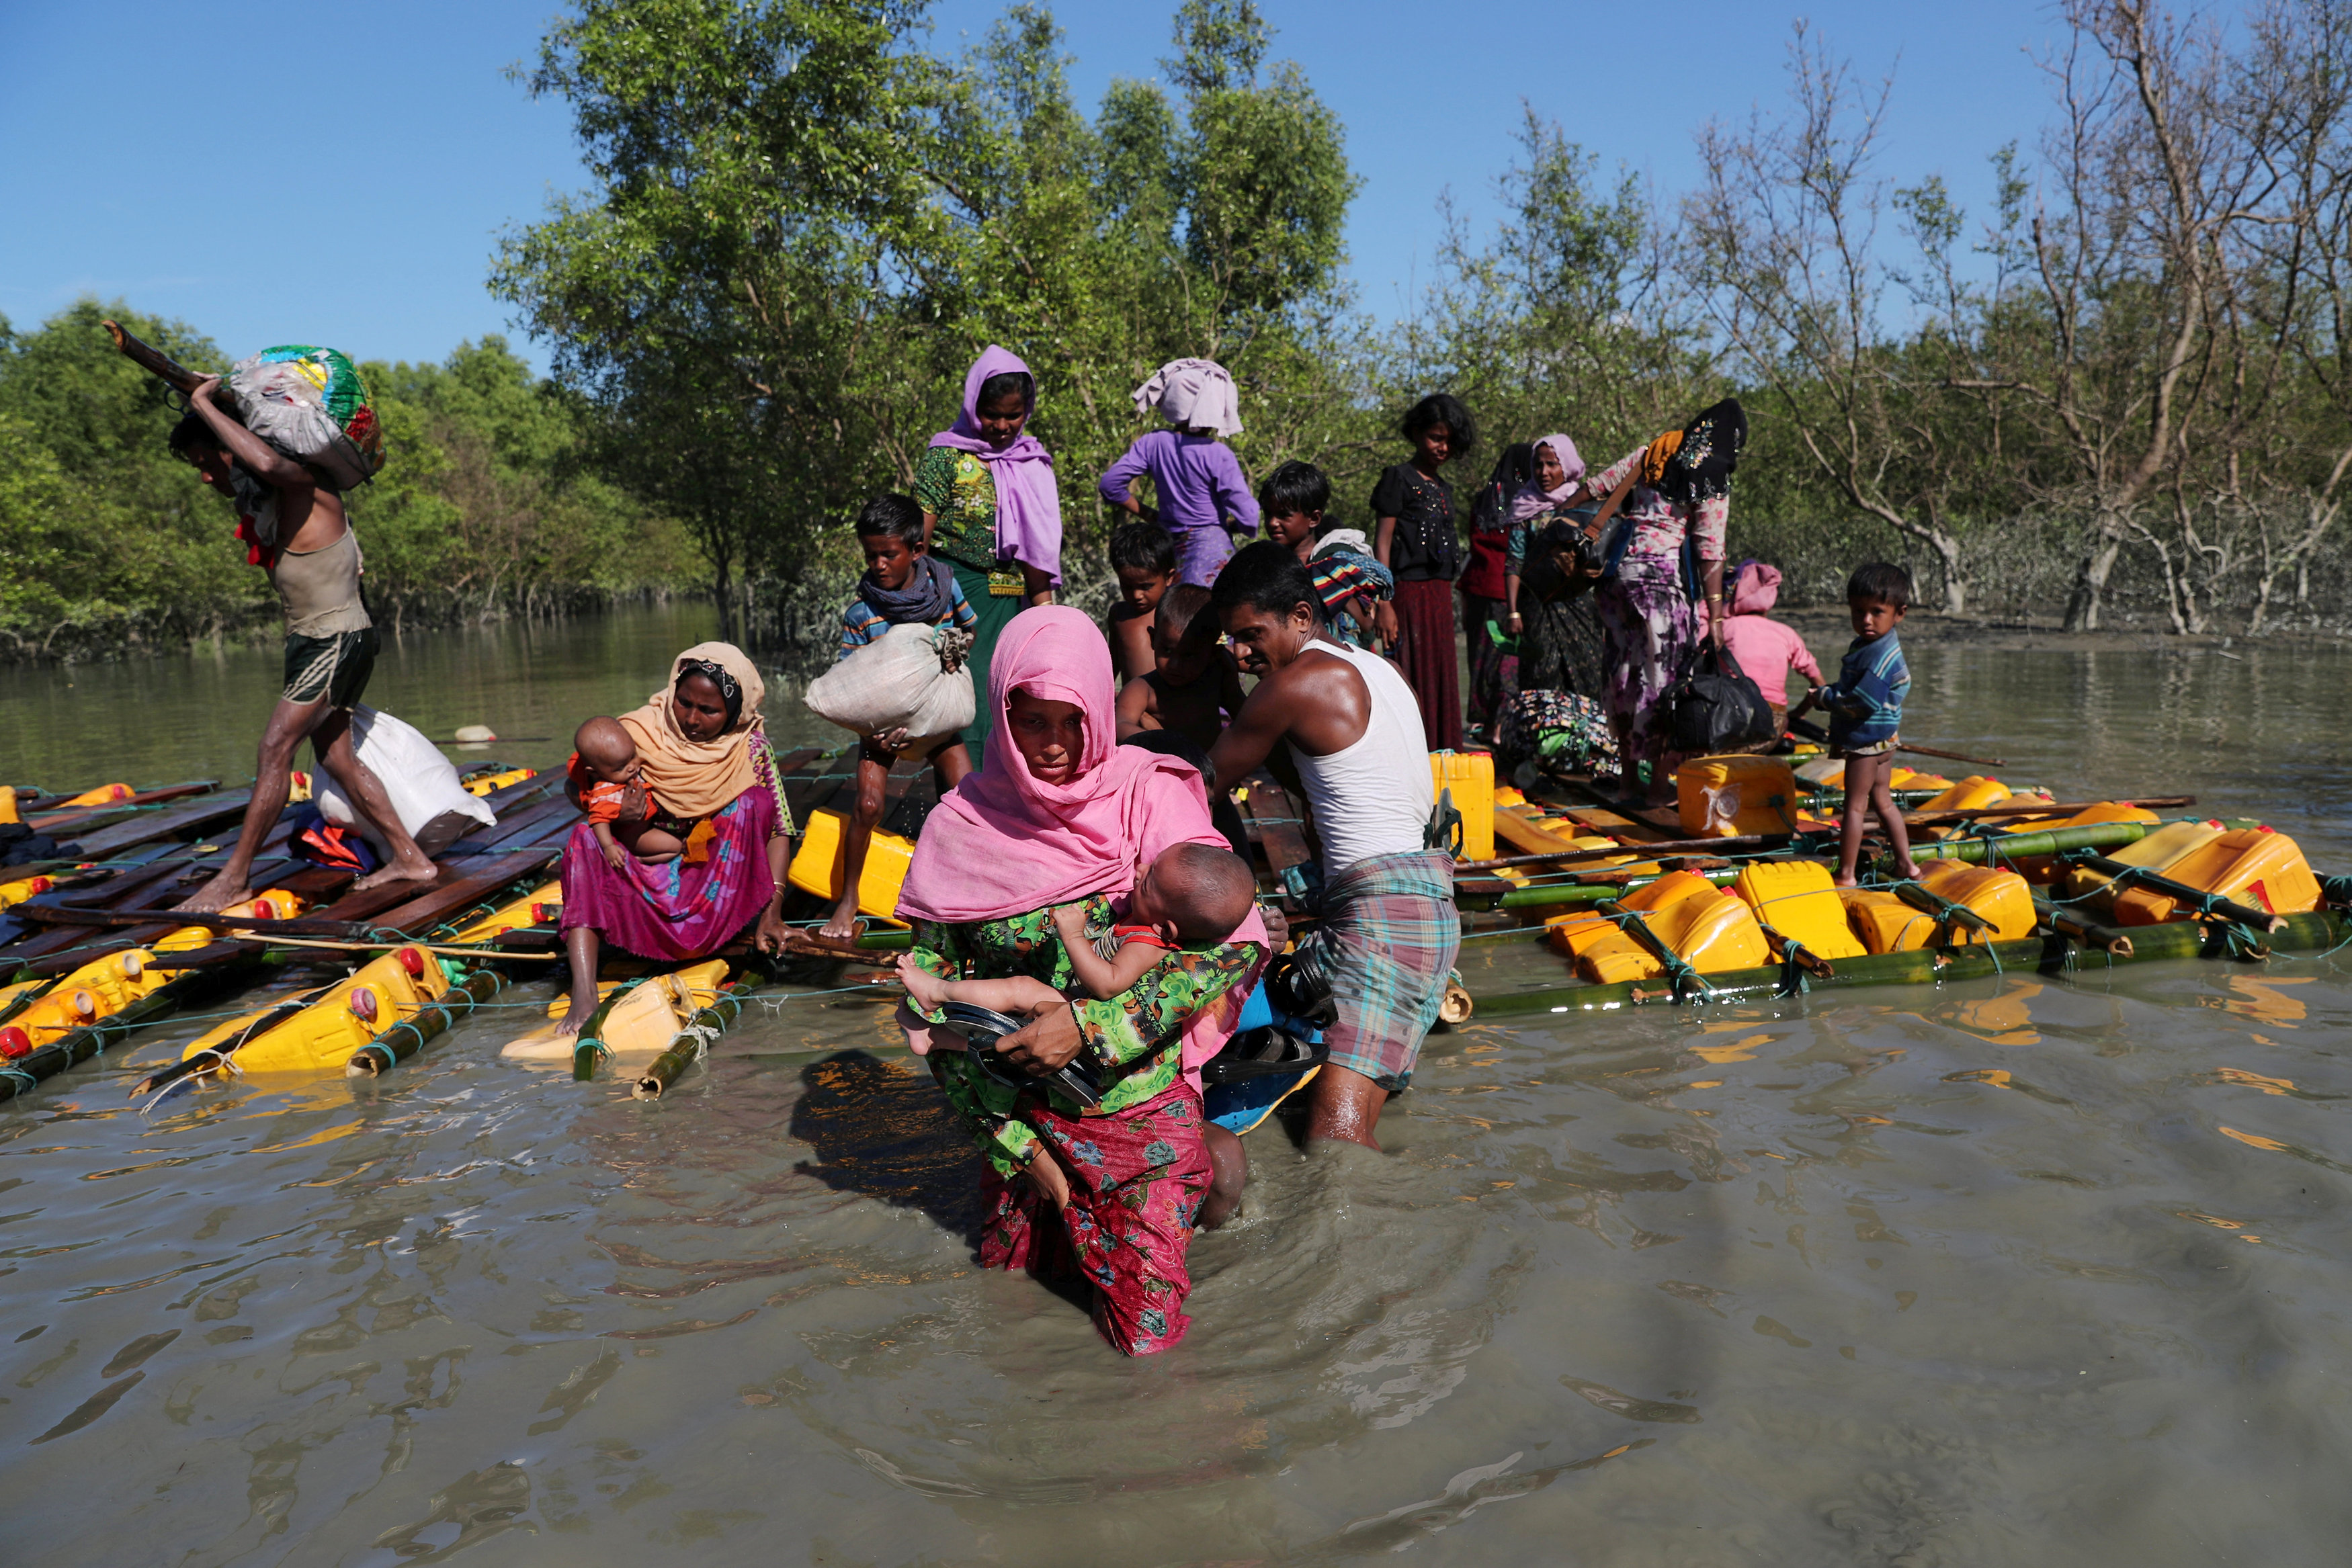 Aboard rickety boats or swimming, over 750 Rohingya reach Bangladesh